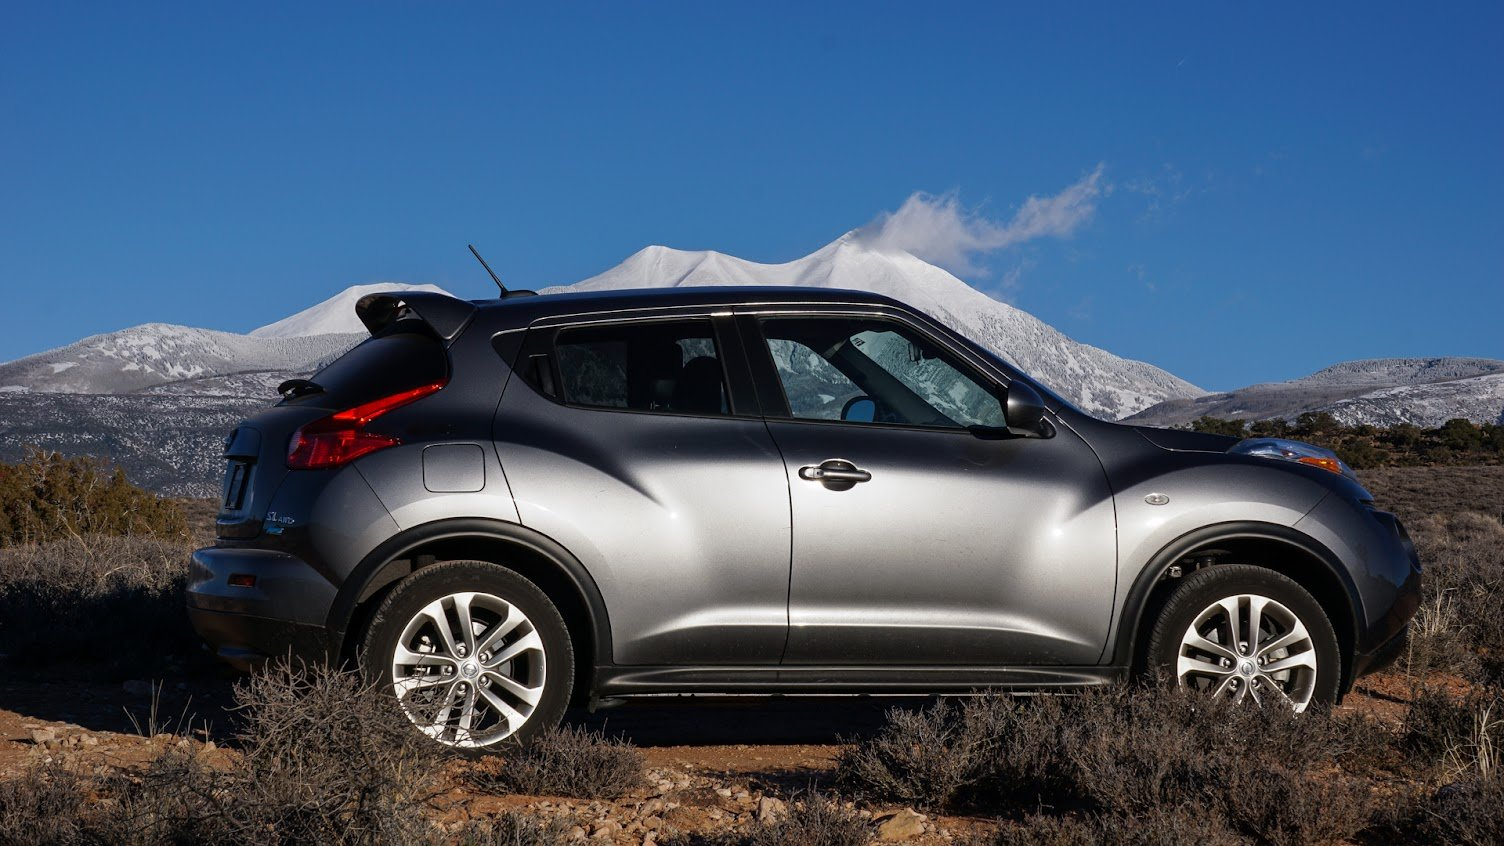 What previous cars have you owned? | Nissan Juke : Juke Forums